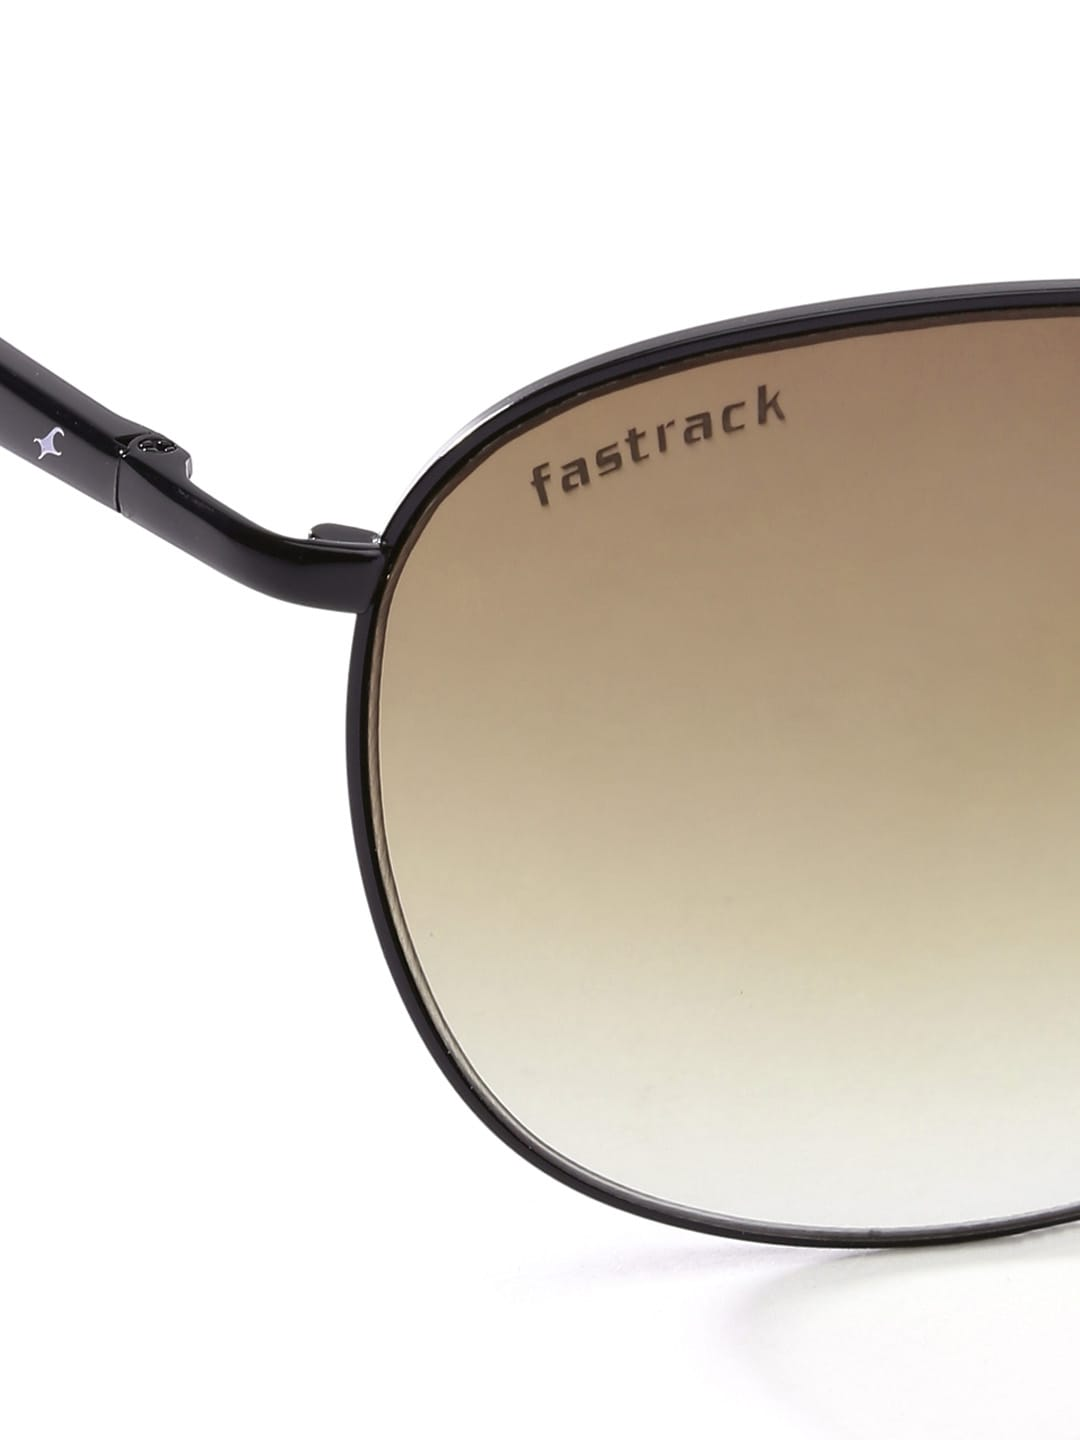 Fastrack Sunglasses Case  women fastrack sunglasses case women fastrack sunglasses